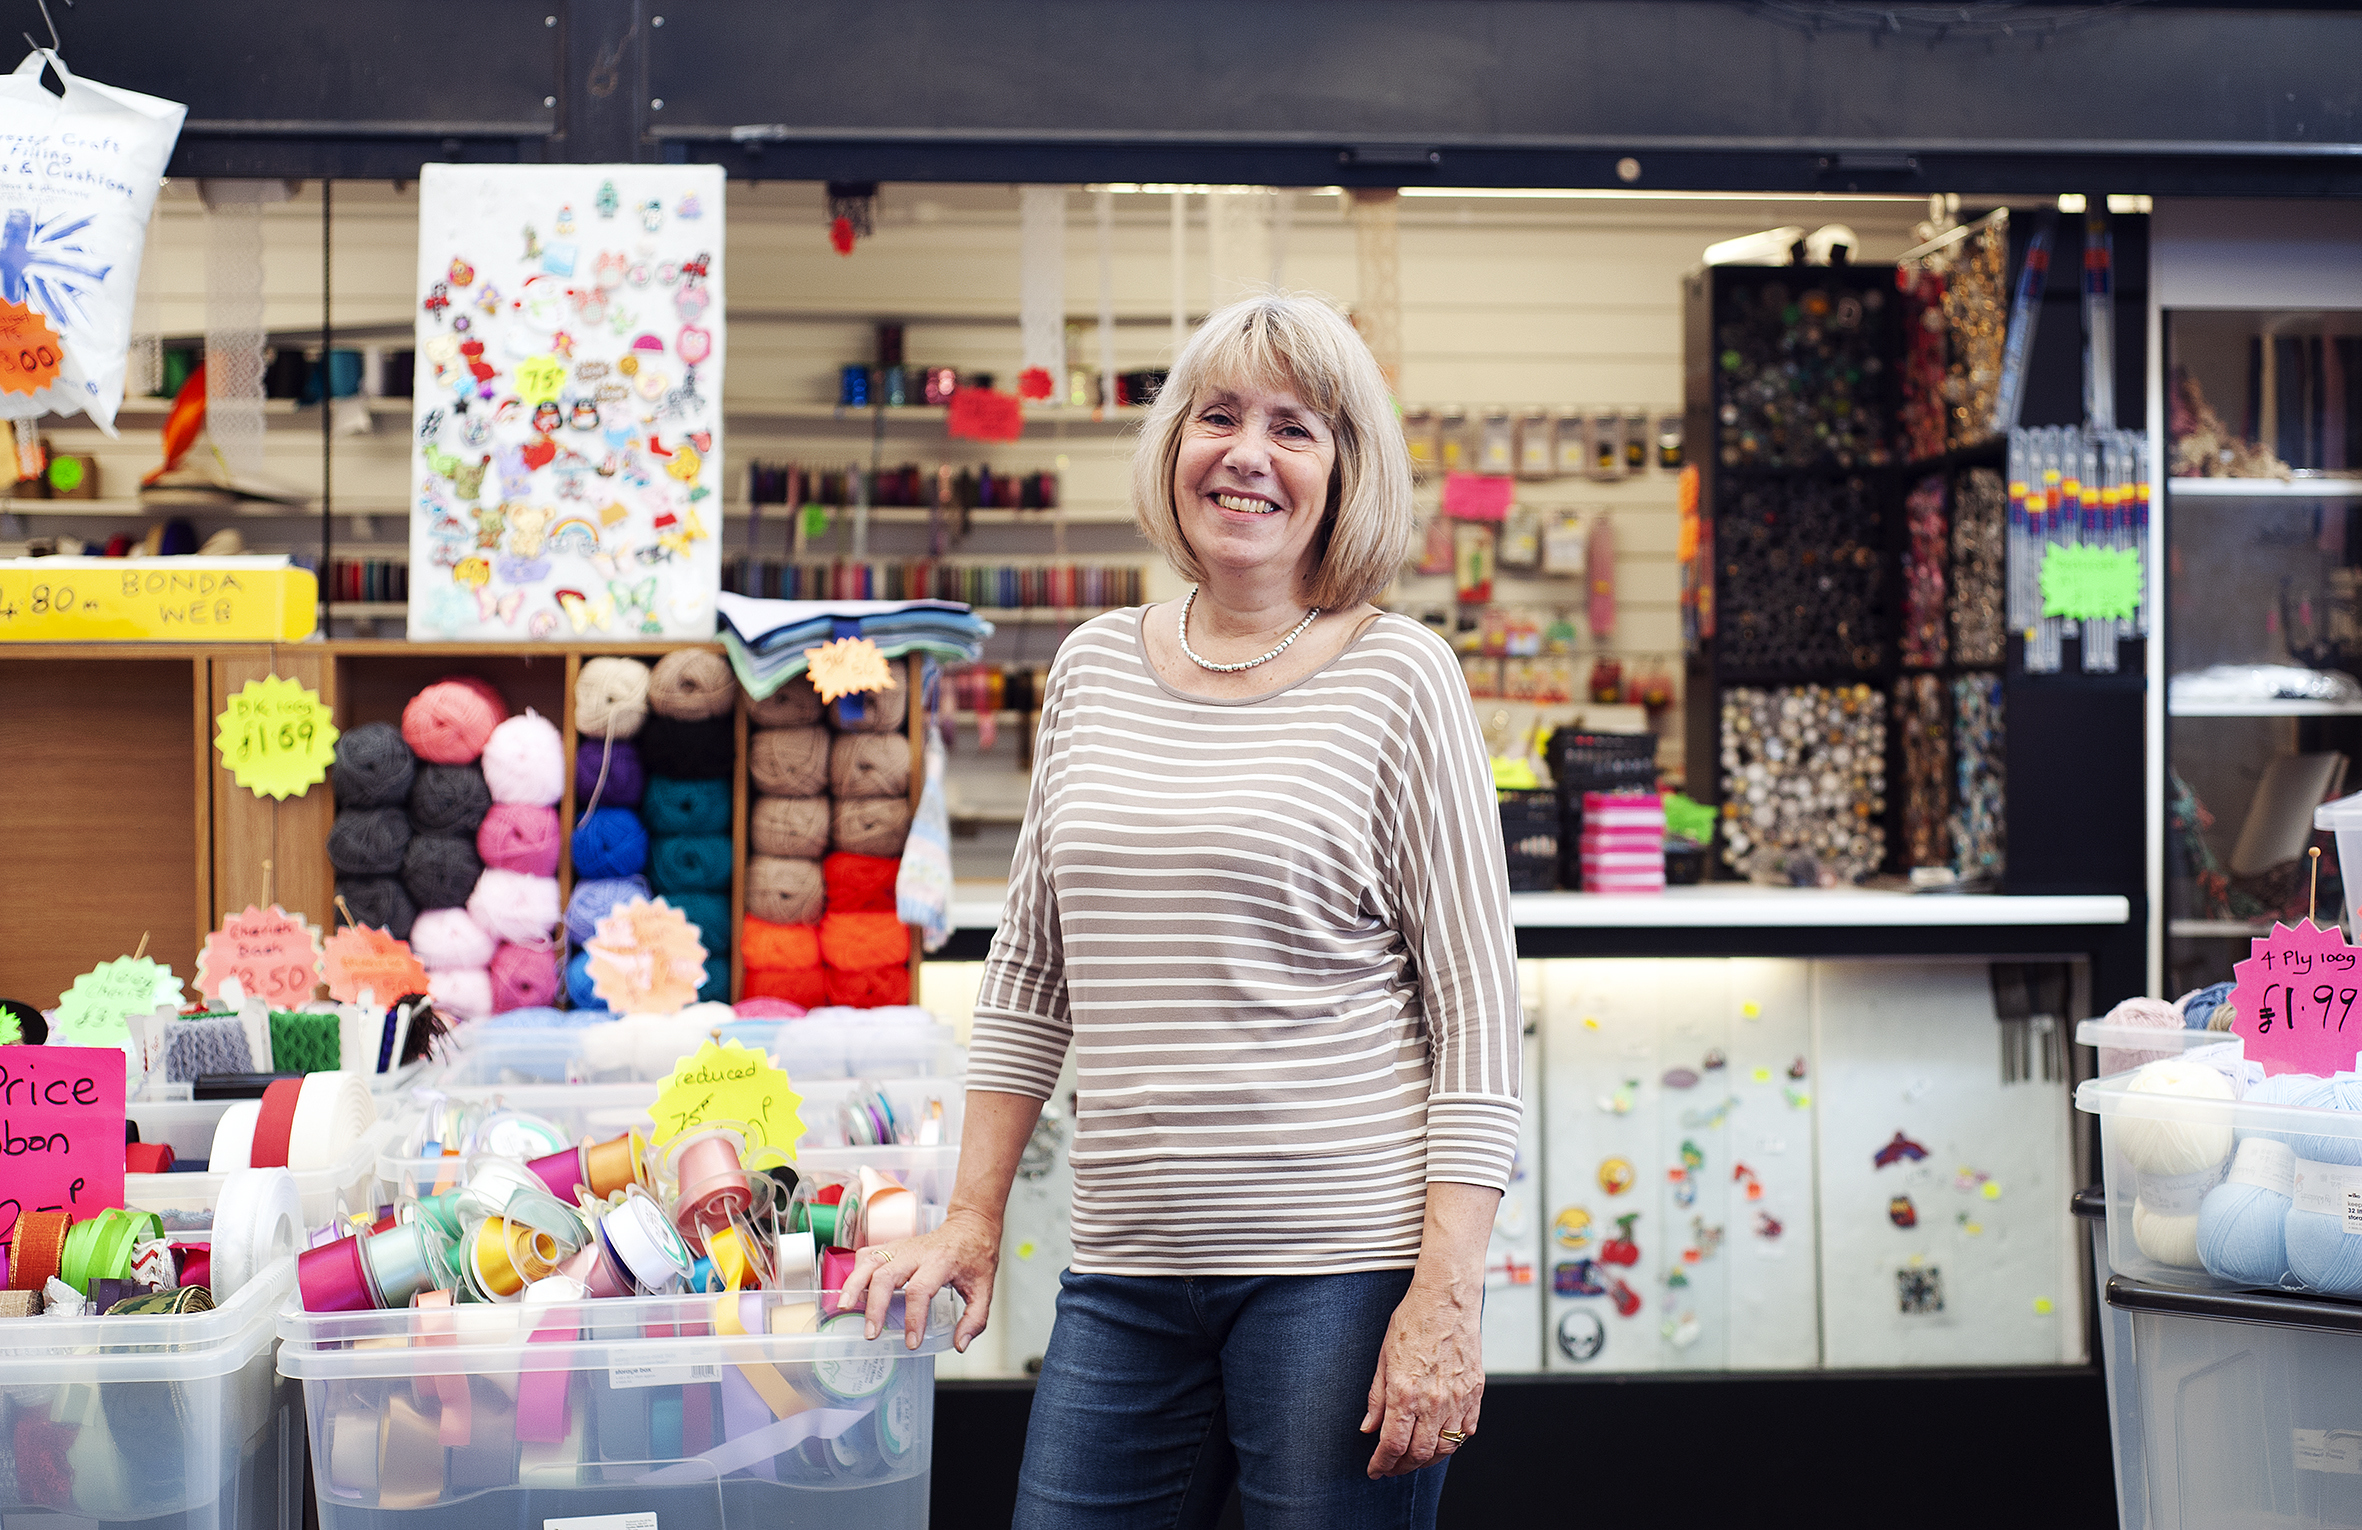 Lynne Lawrence spent 44 happy years working at the market stall